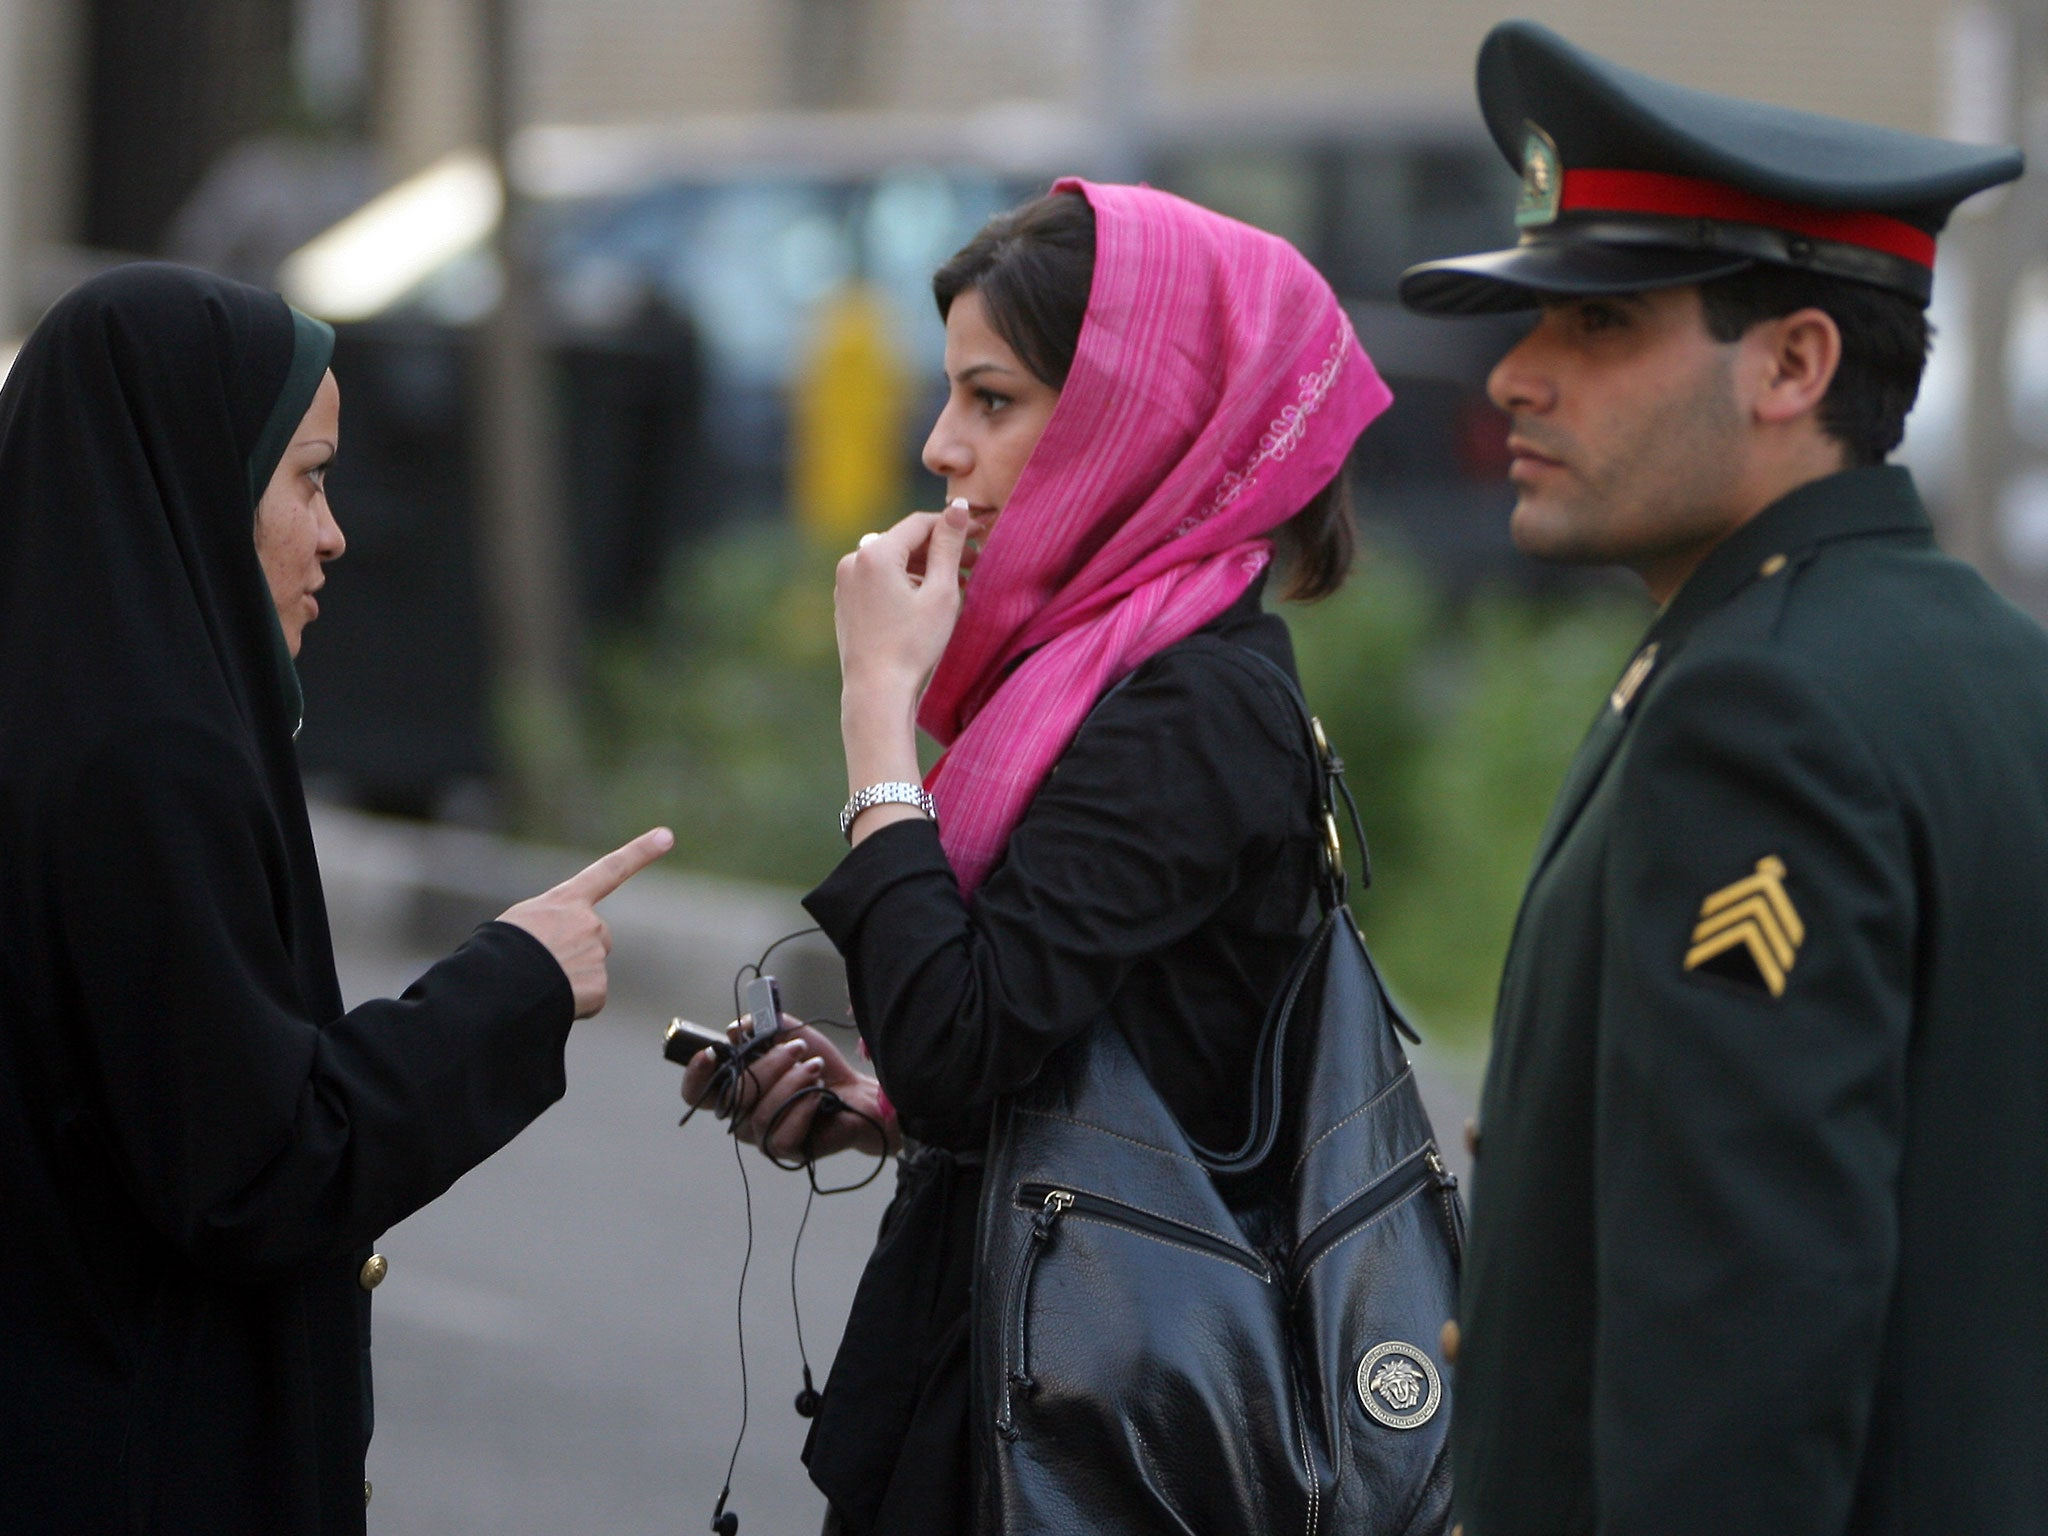 xxxtra small threesome mmf